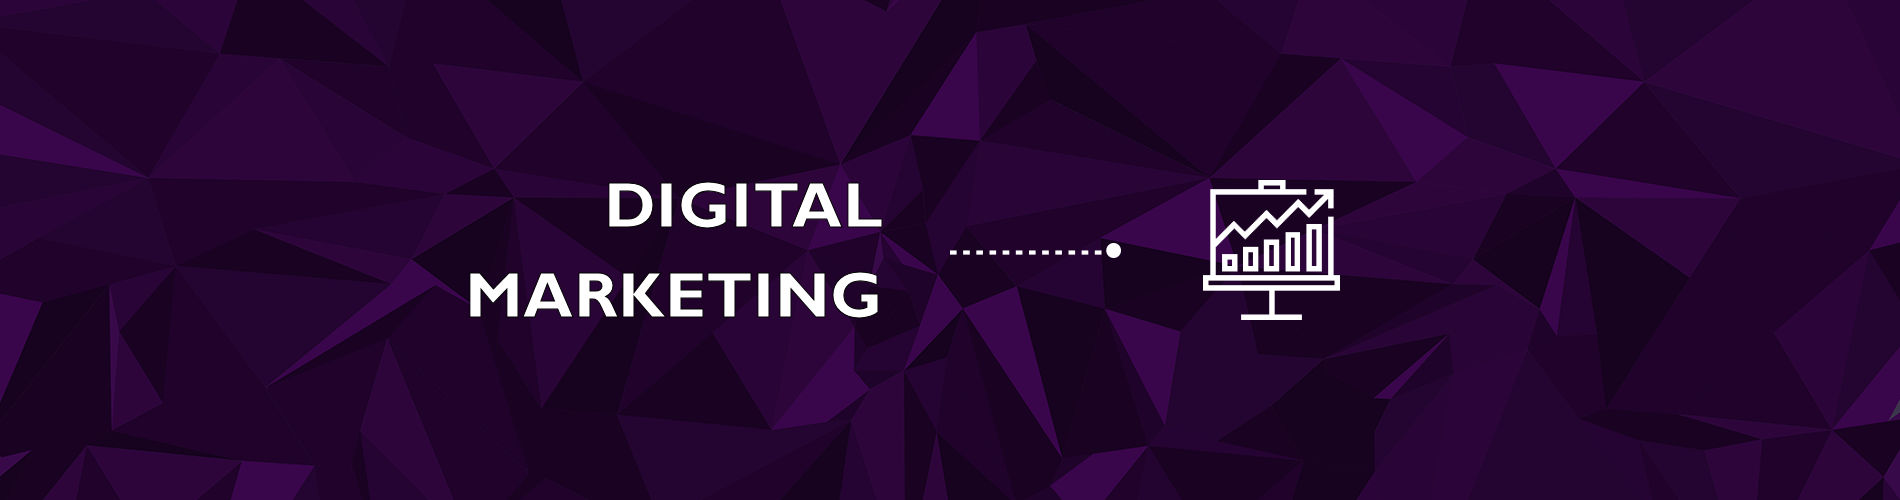 Digital Marketing in Melbourne by Web Marketing Angels